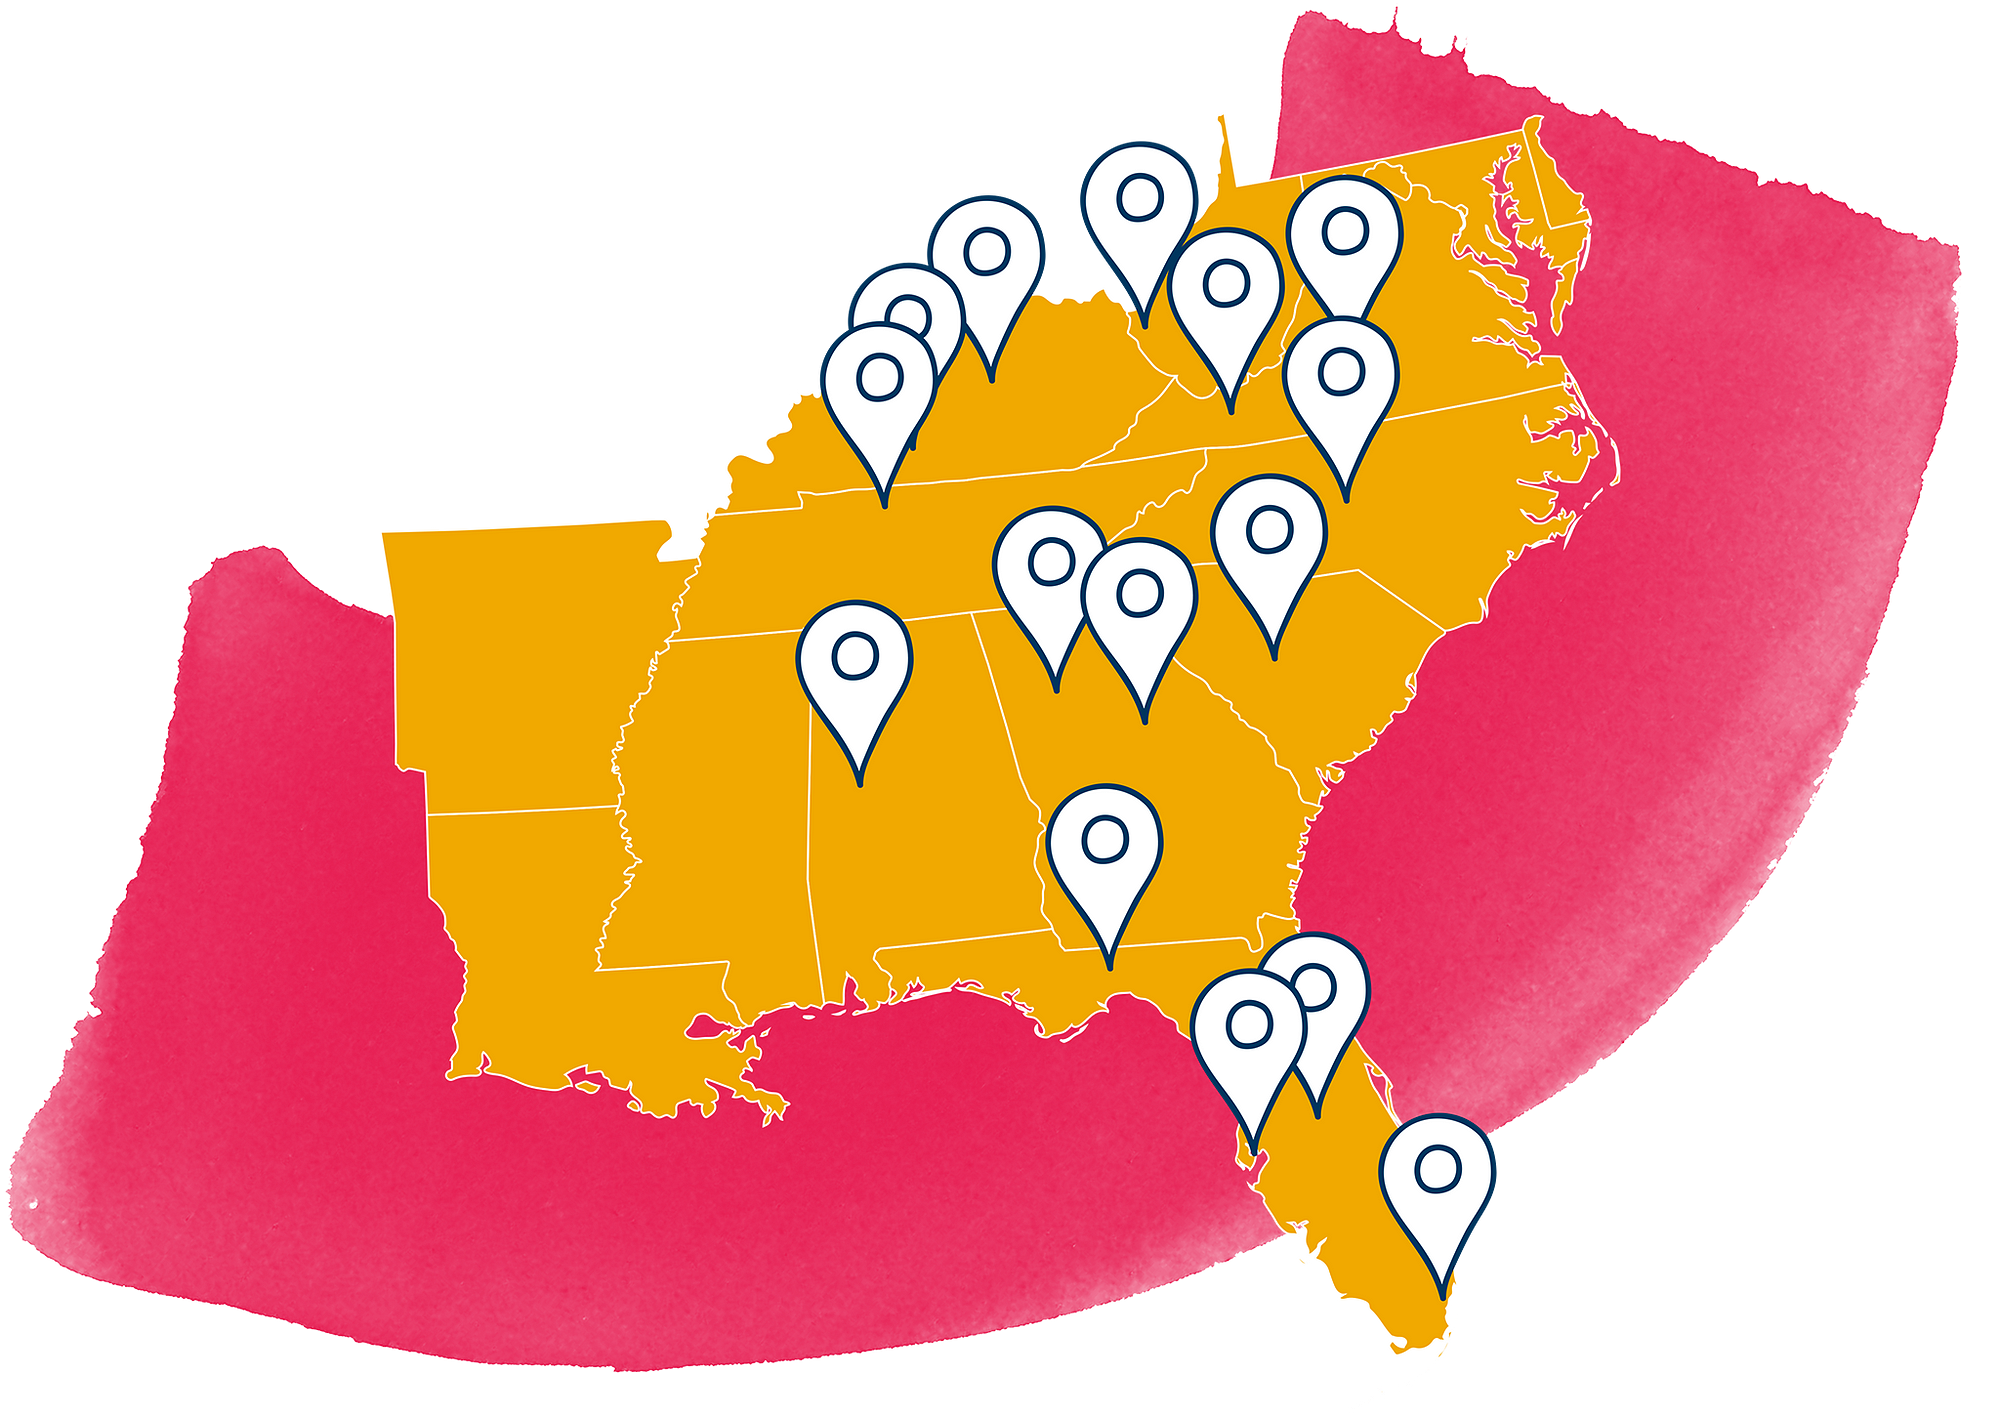 US southeast region map with pins